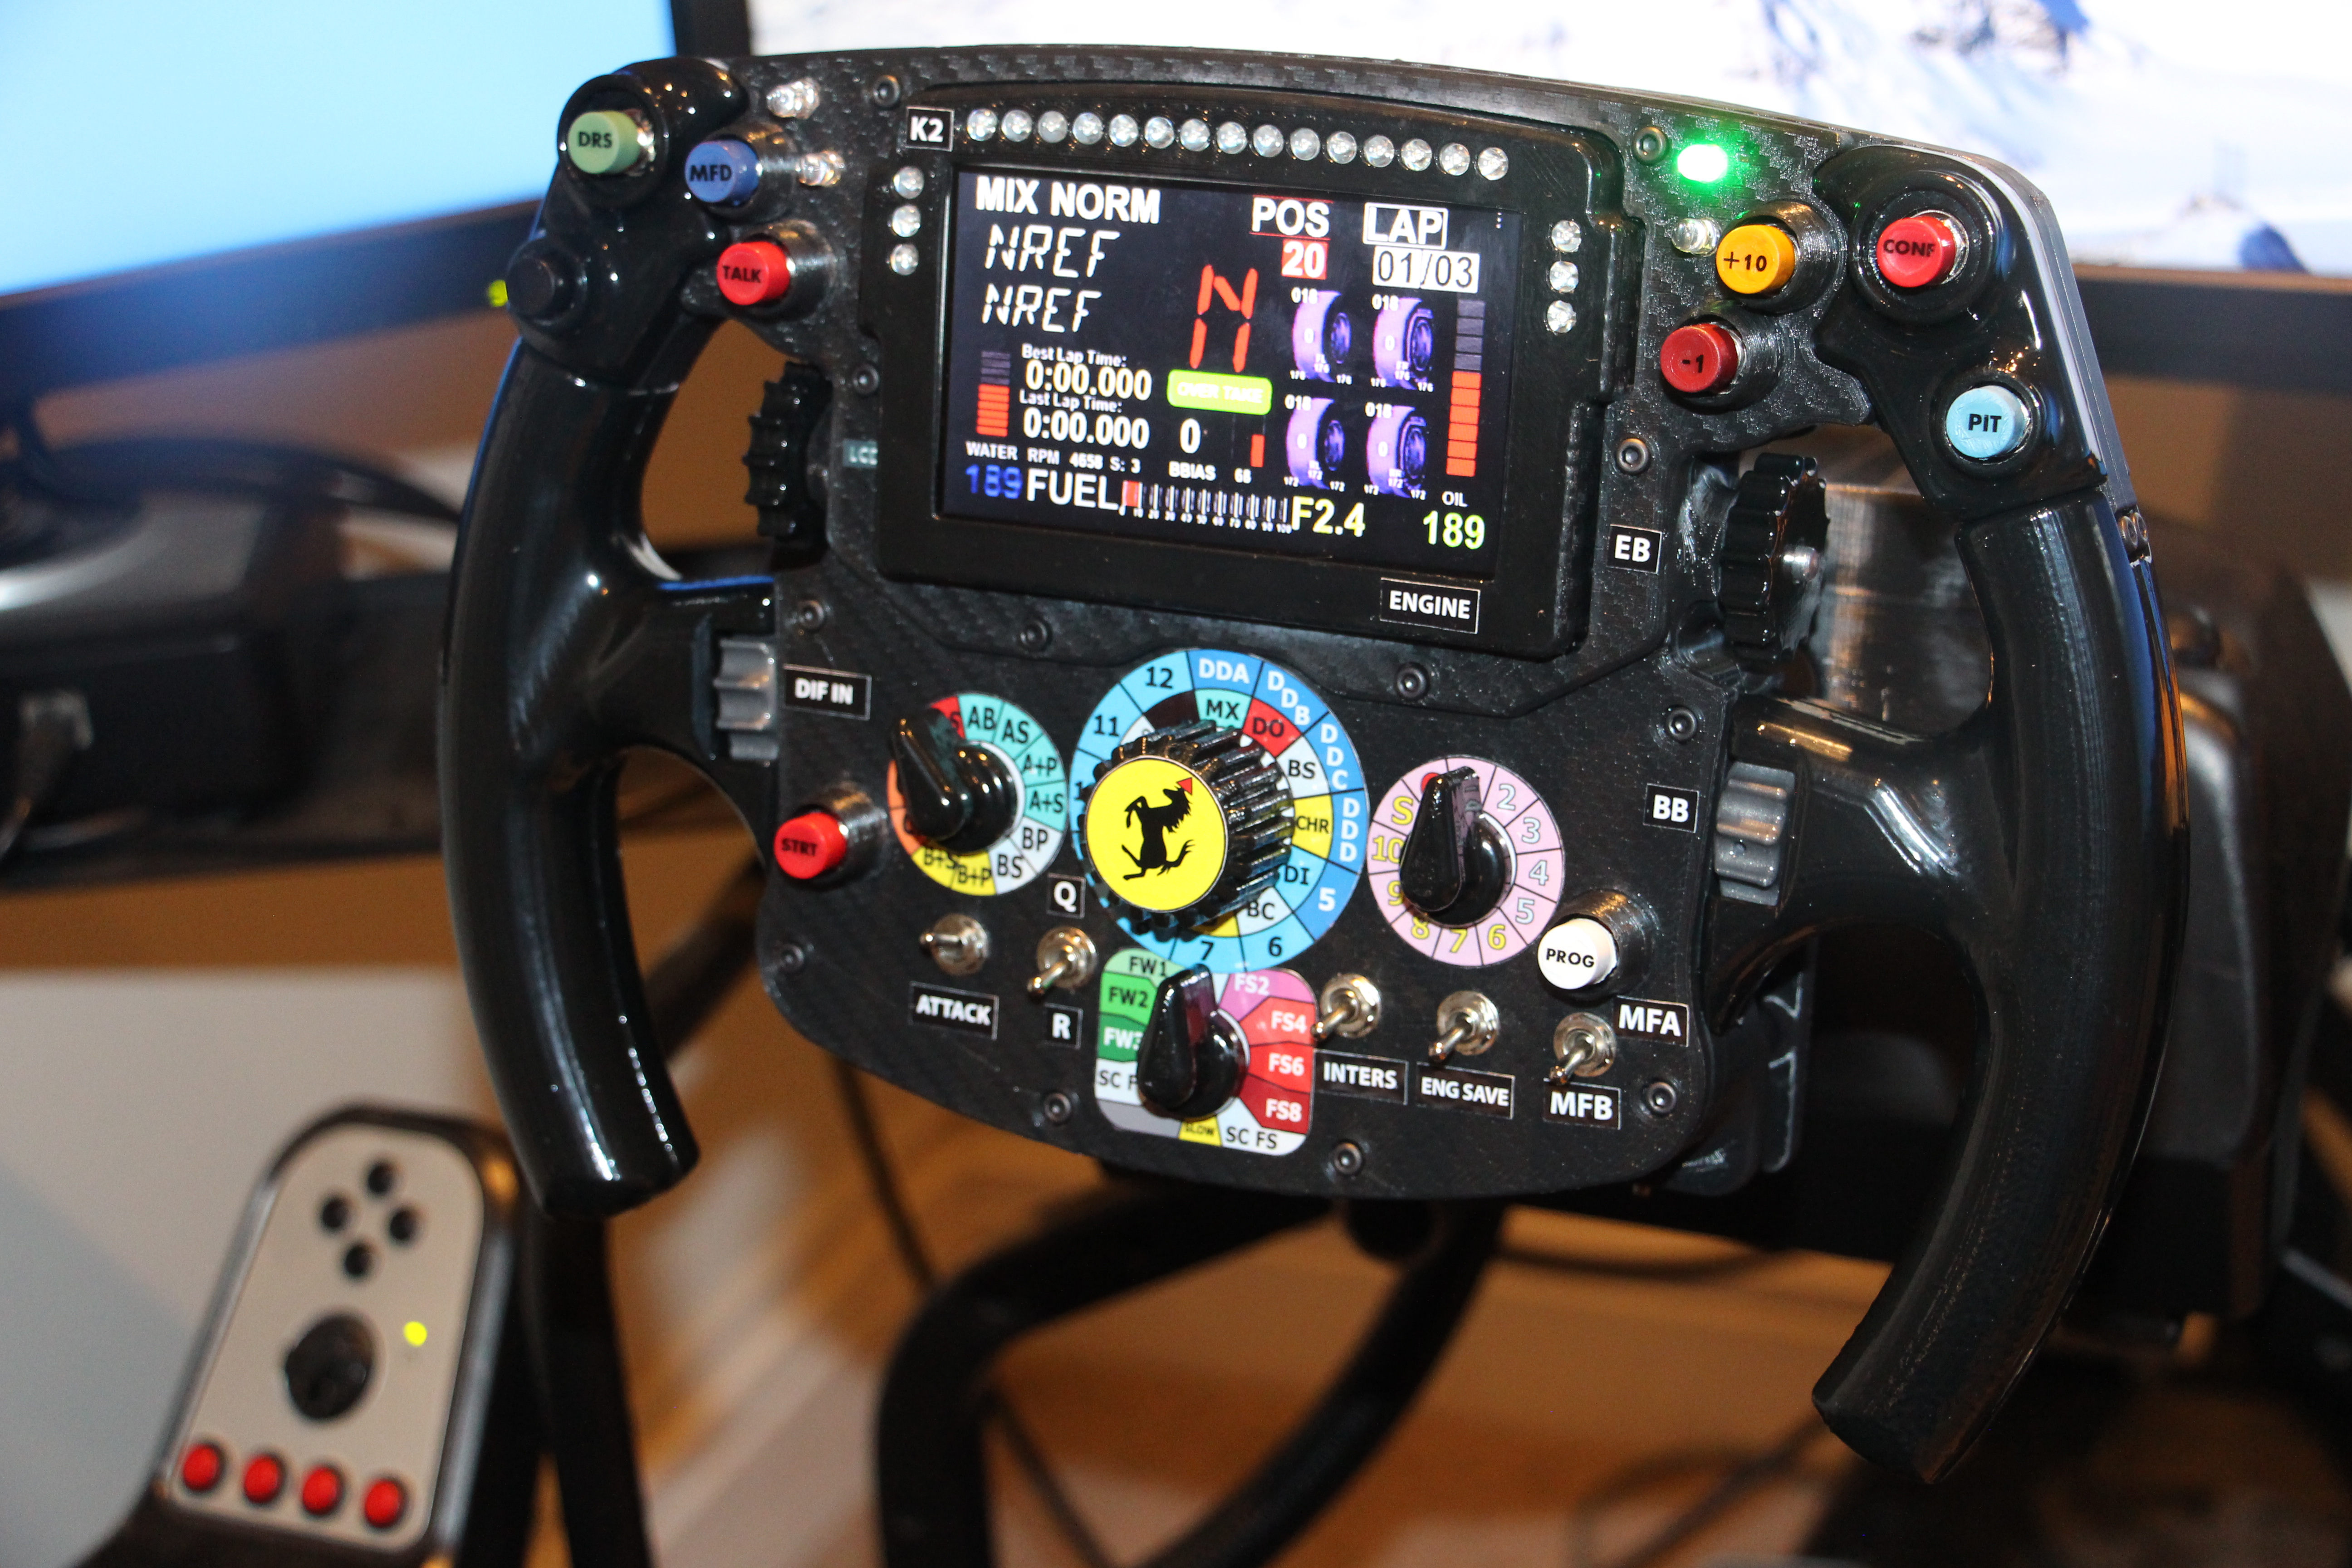 Thrustmaster F1 wheel mod with SIMR-F1 display, switches and